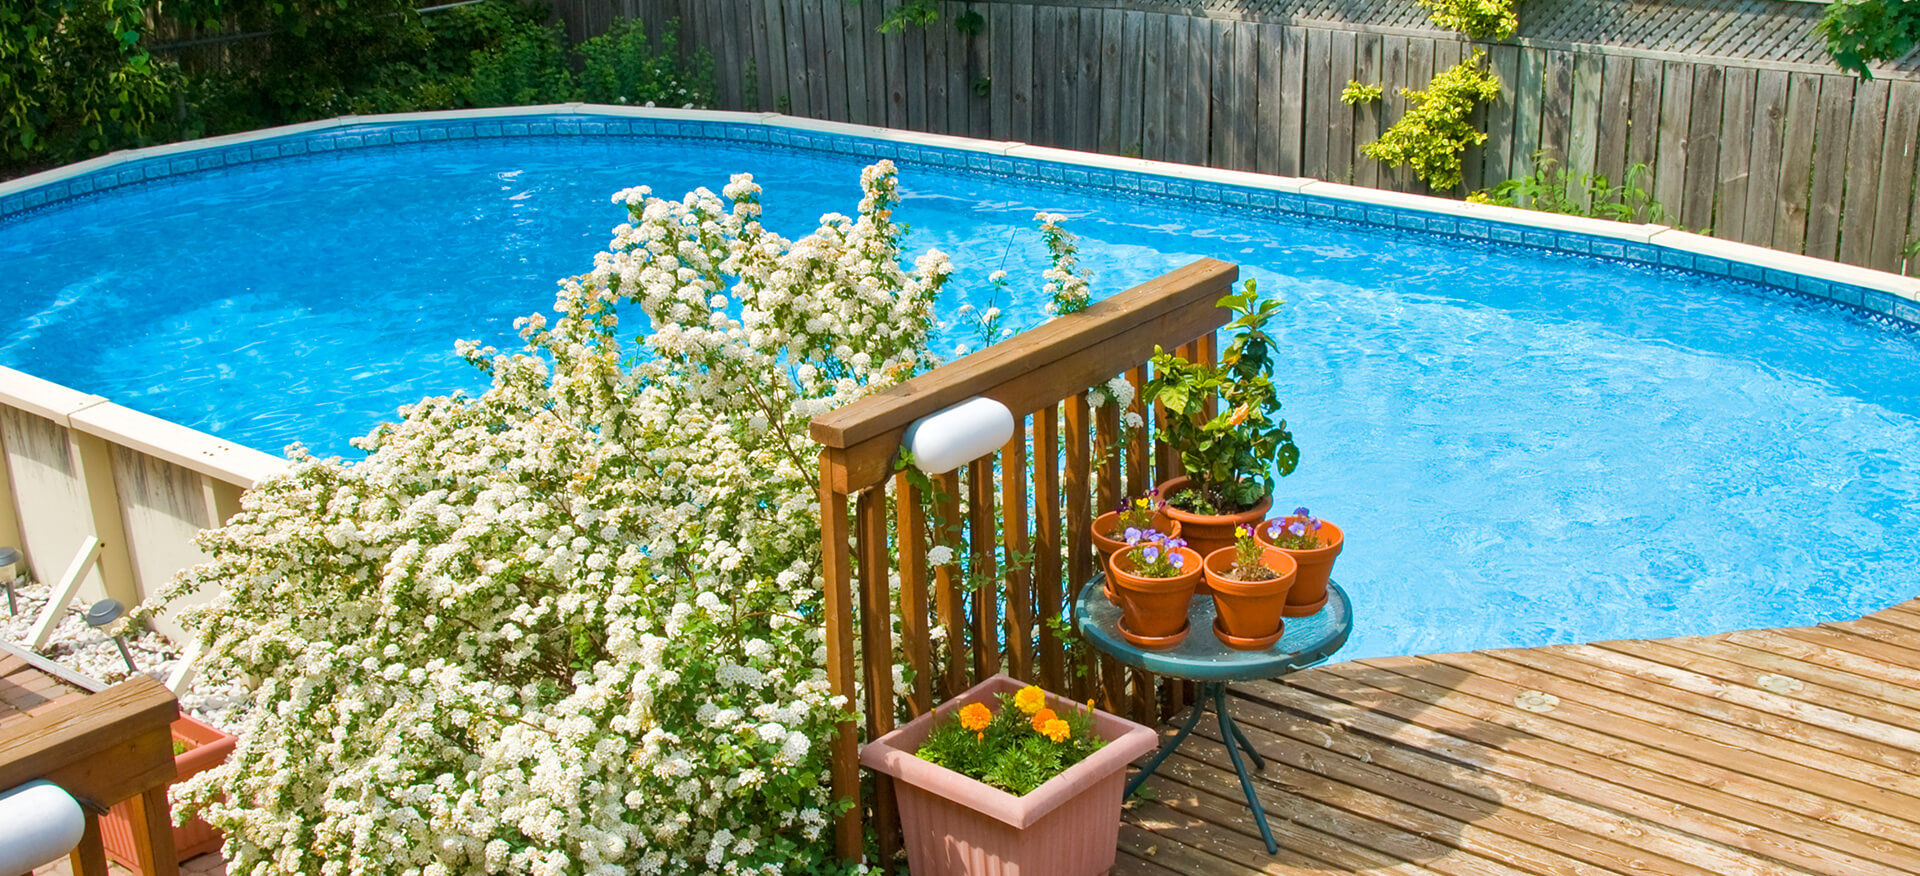 Buying an Above Ground Pool FAQ